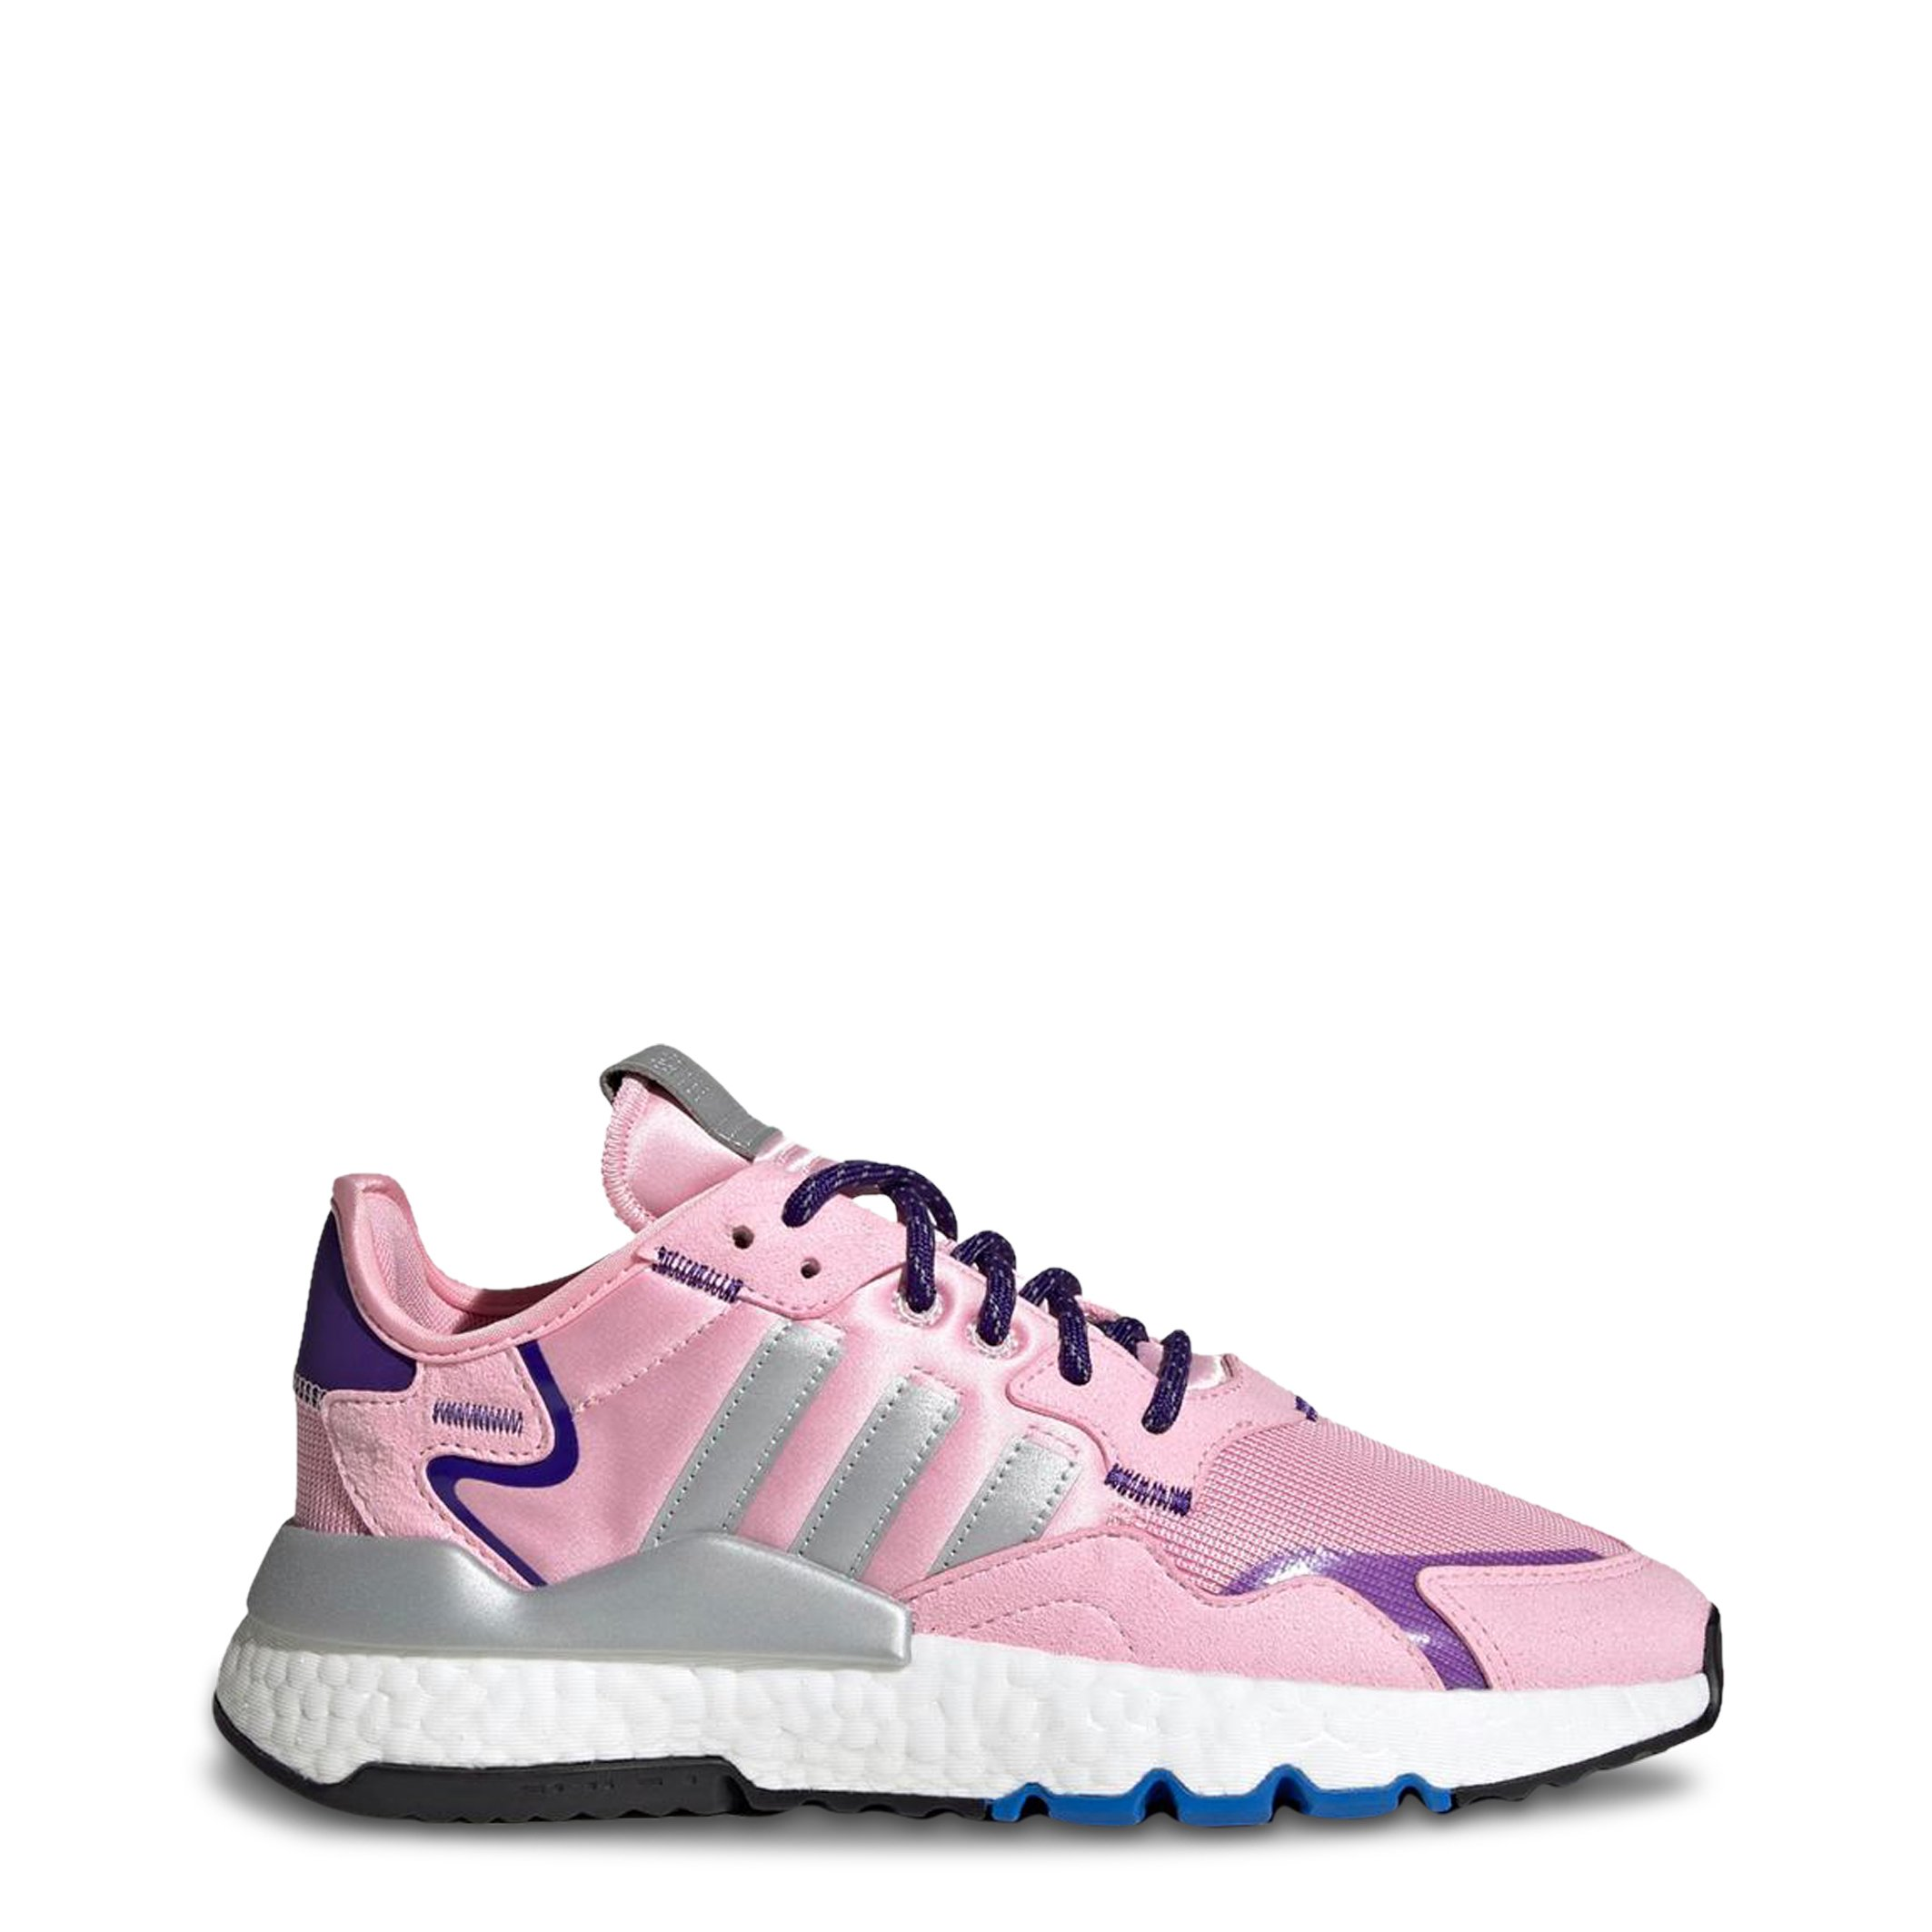 Adidas Men's Nite Jogger Trainers Various Colours EE5851 - pink UK 6.5